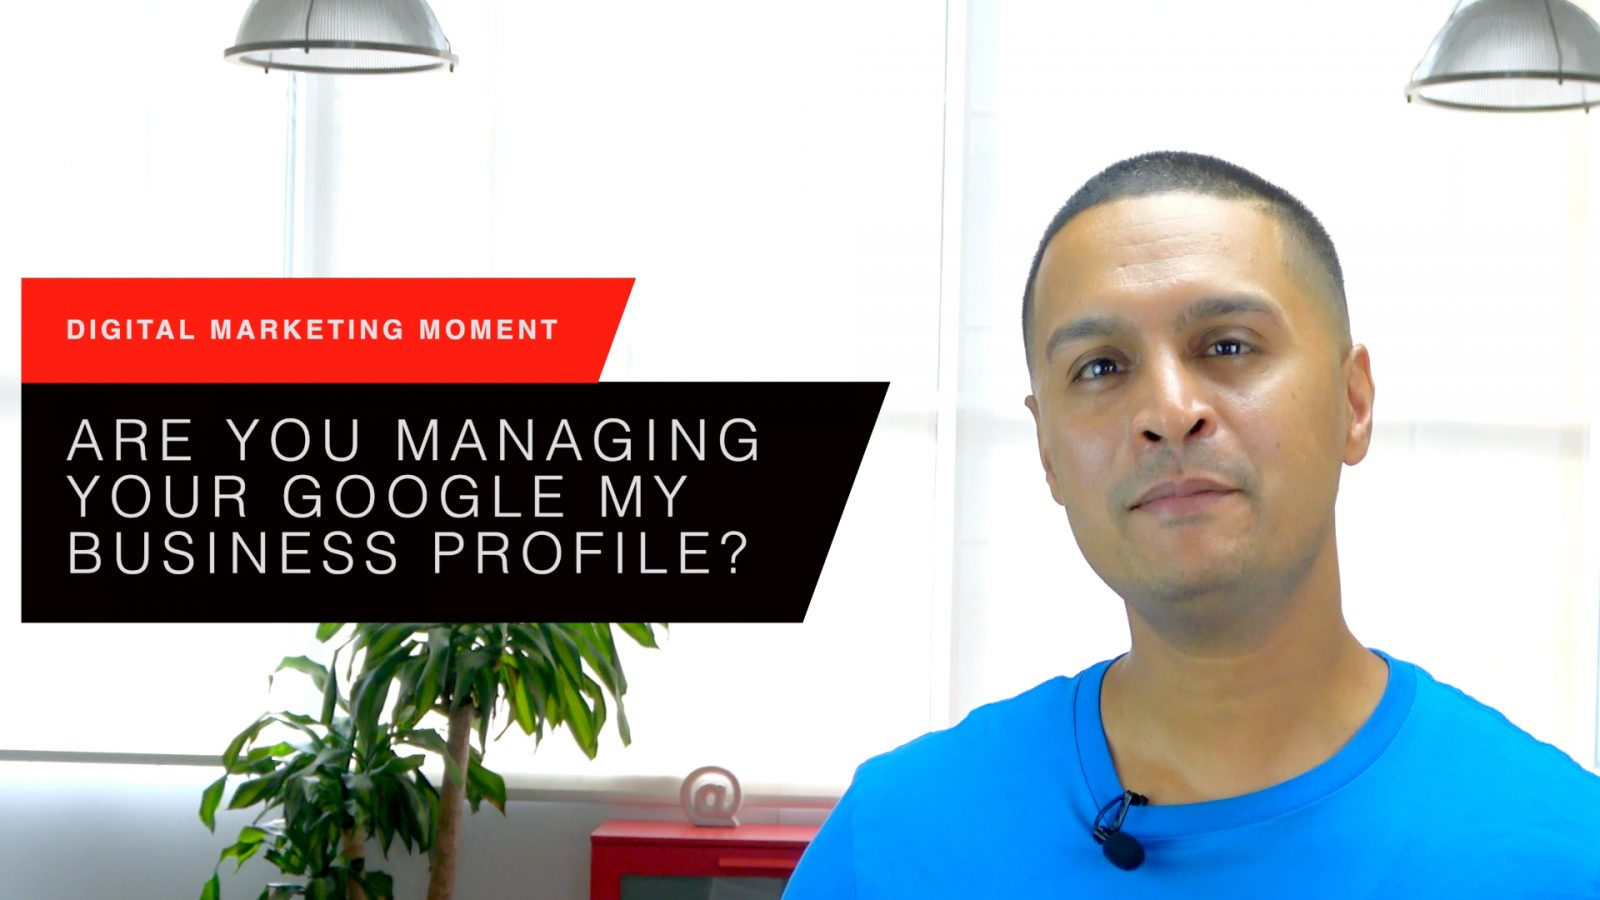 Are You Managing Your Google My Business Profile